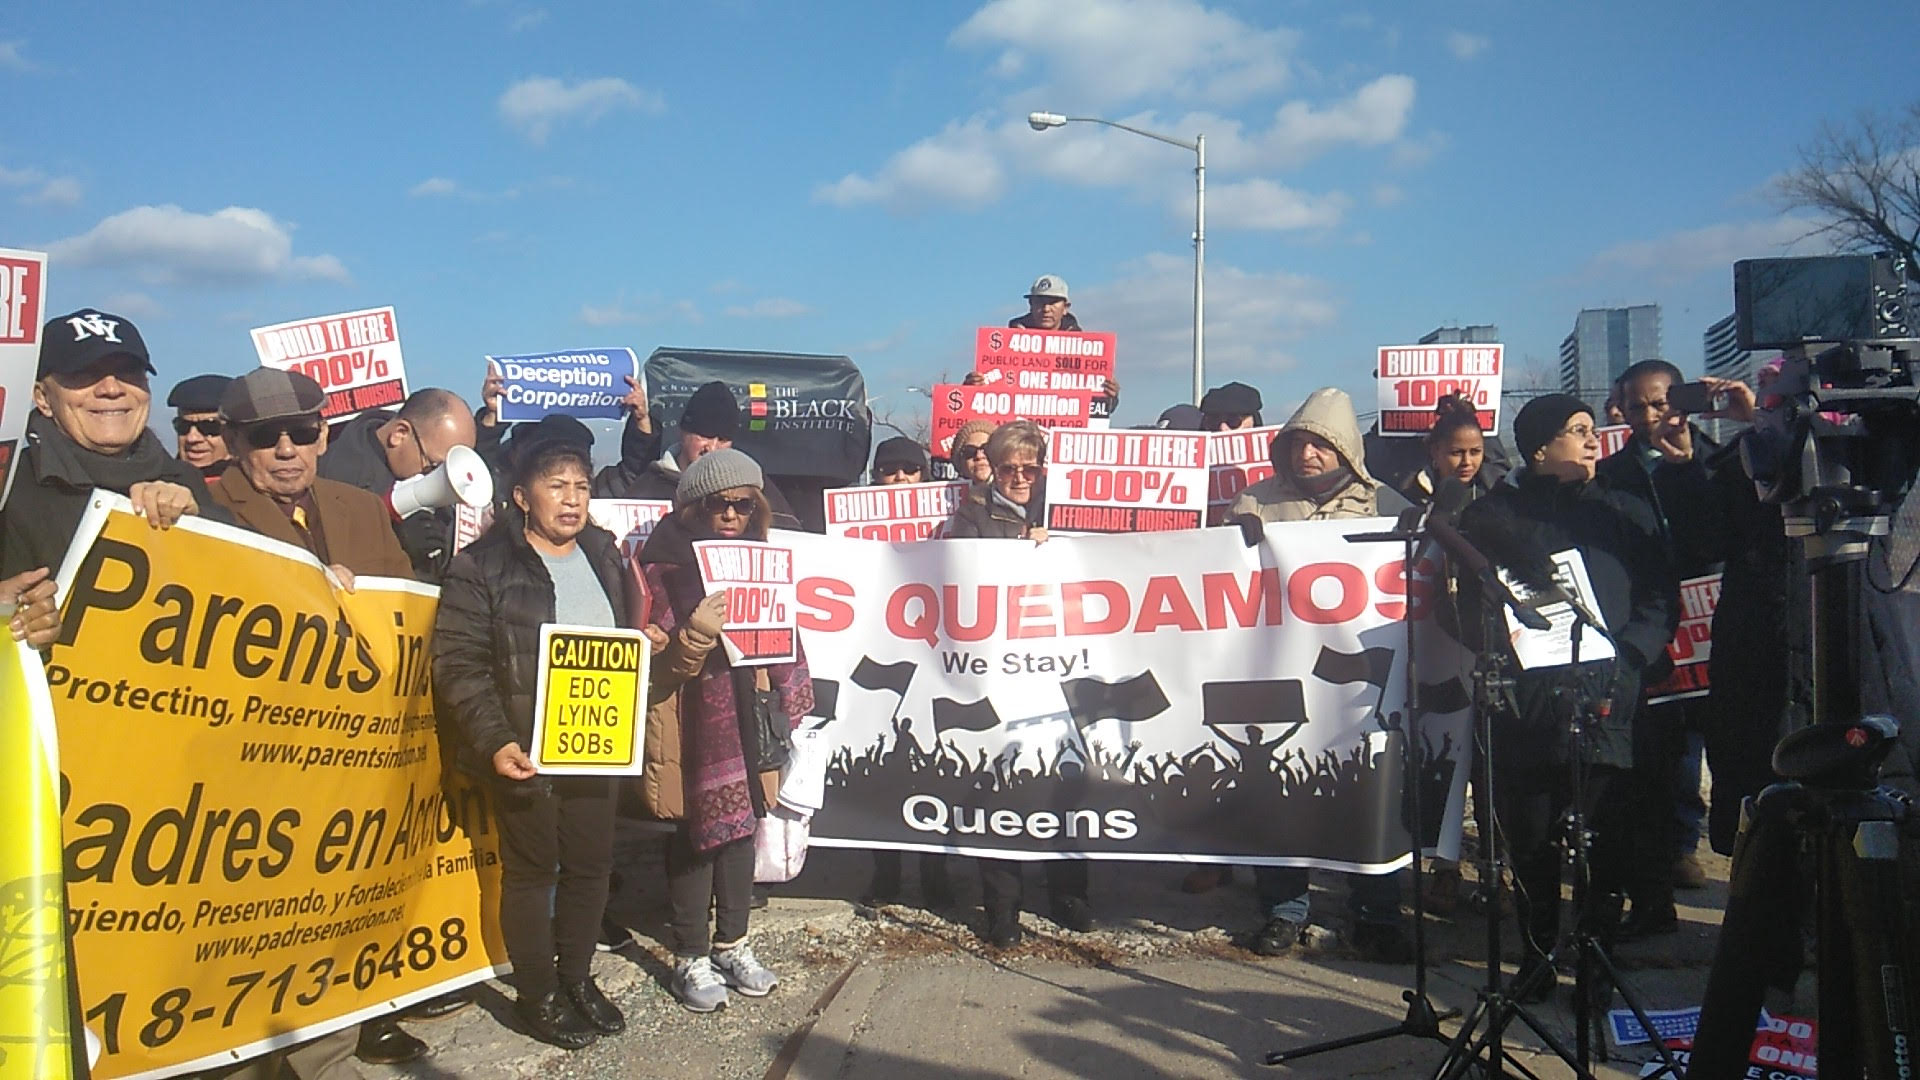 The community coalition Nos Quedamos demonstrates for affordable housing at Willets Point. Photo courtesy of Nos Quedamos